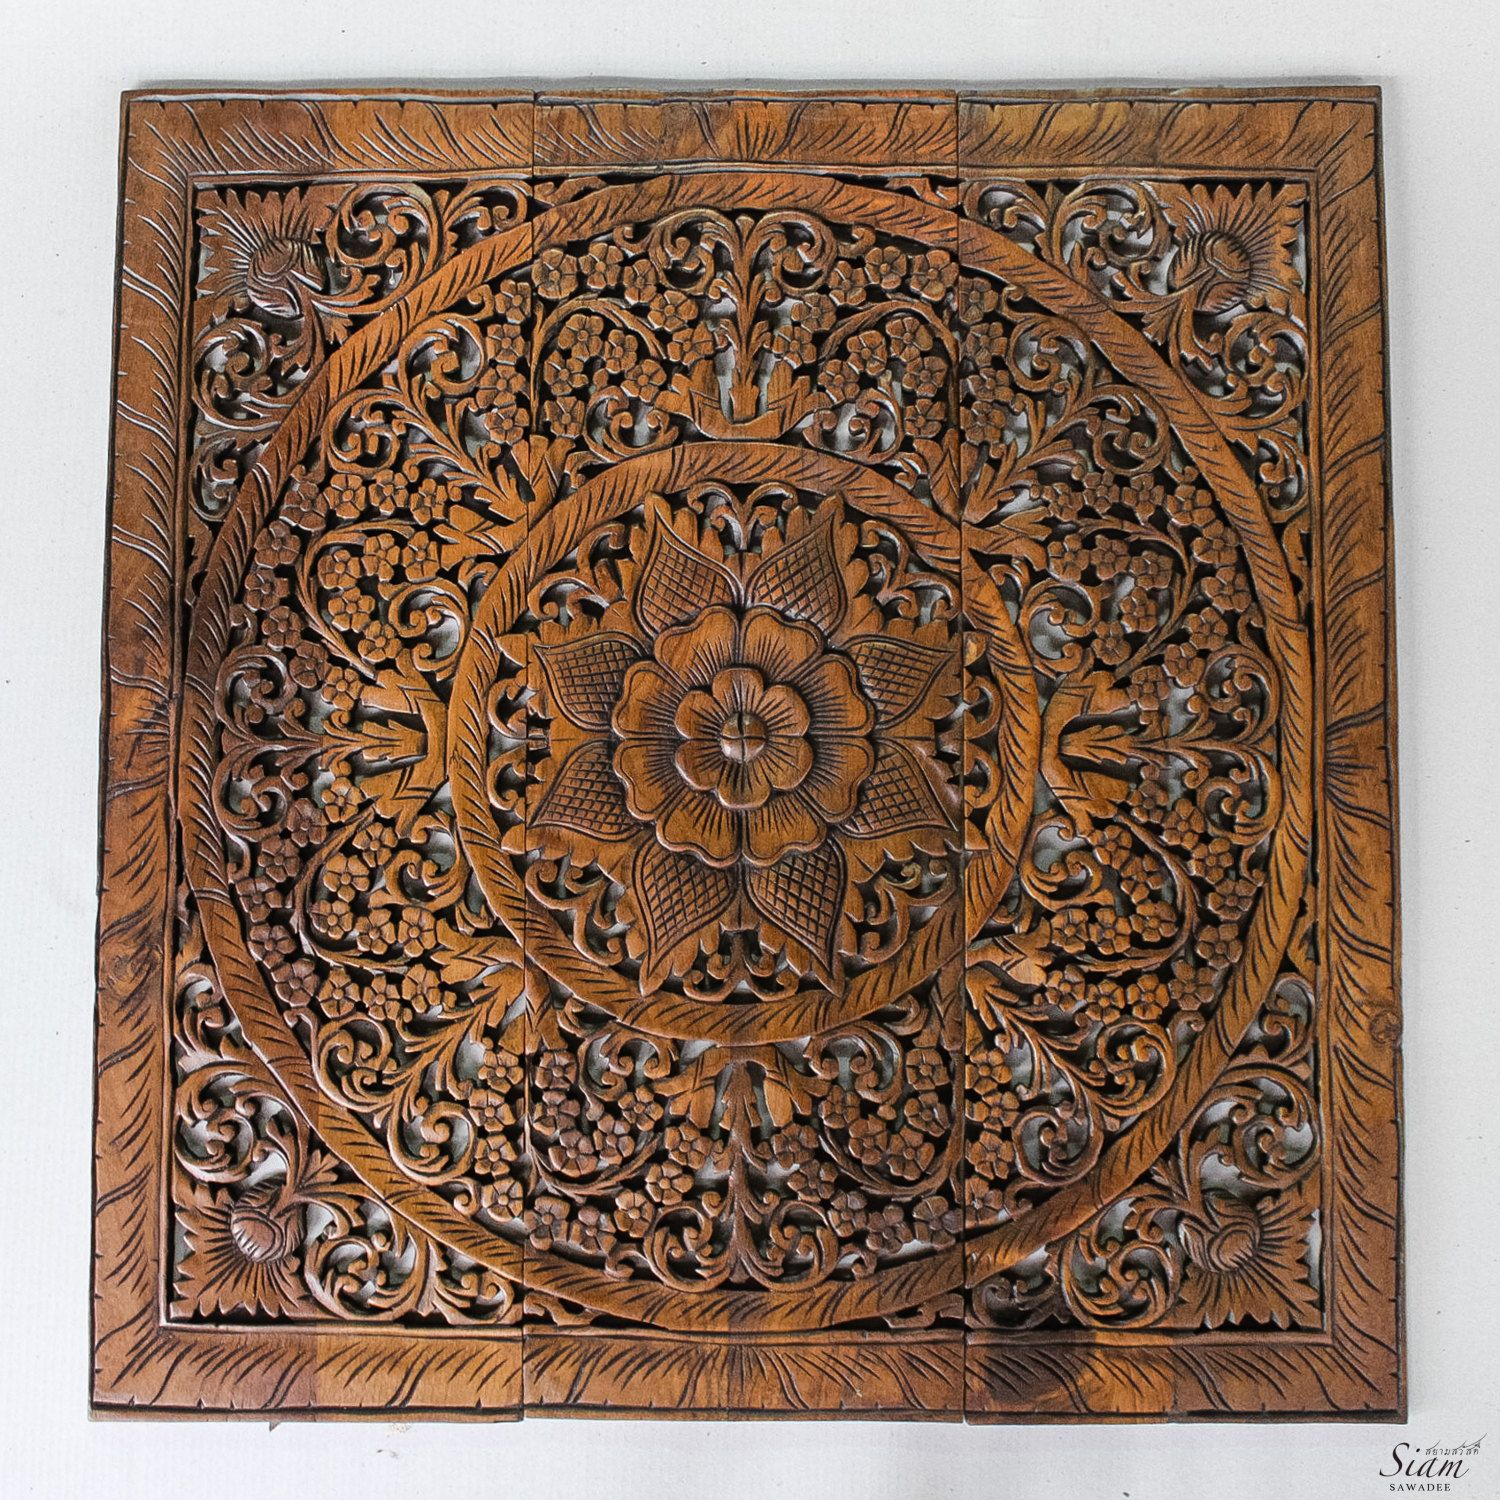 Carved Wood Wall Hanging Wall Art Decor Carved Wood Panel Asian Home Interior